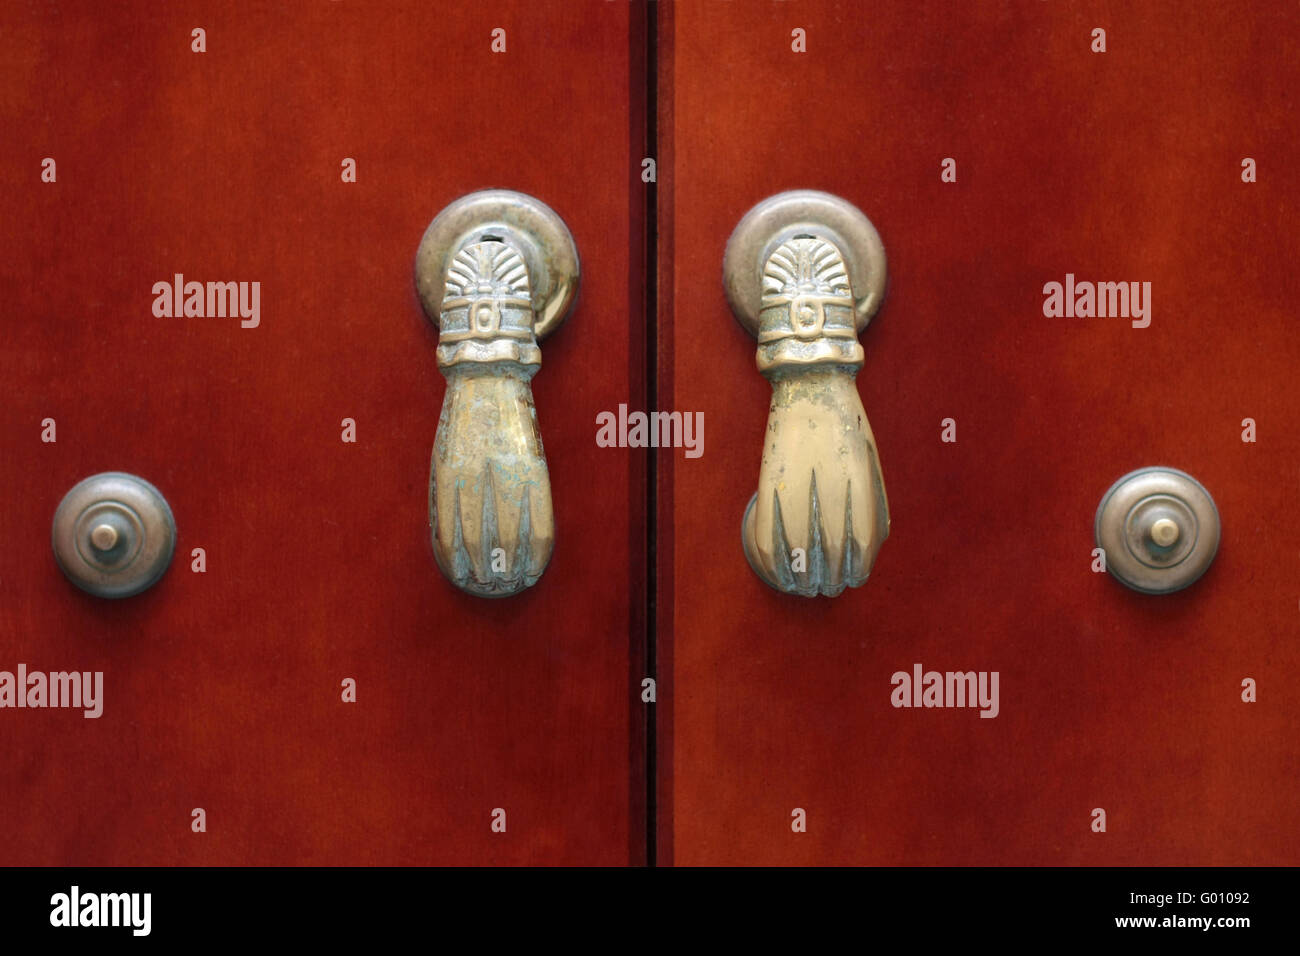 Doors 0184. Andalusia - Stock Image